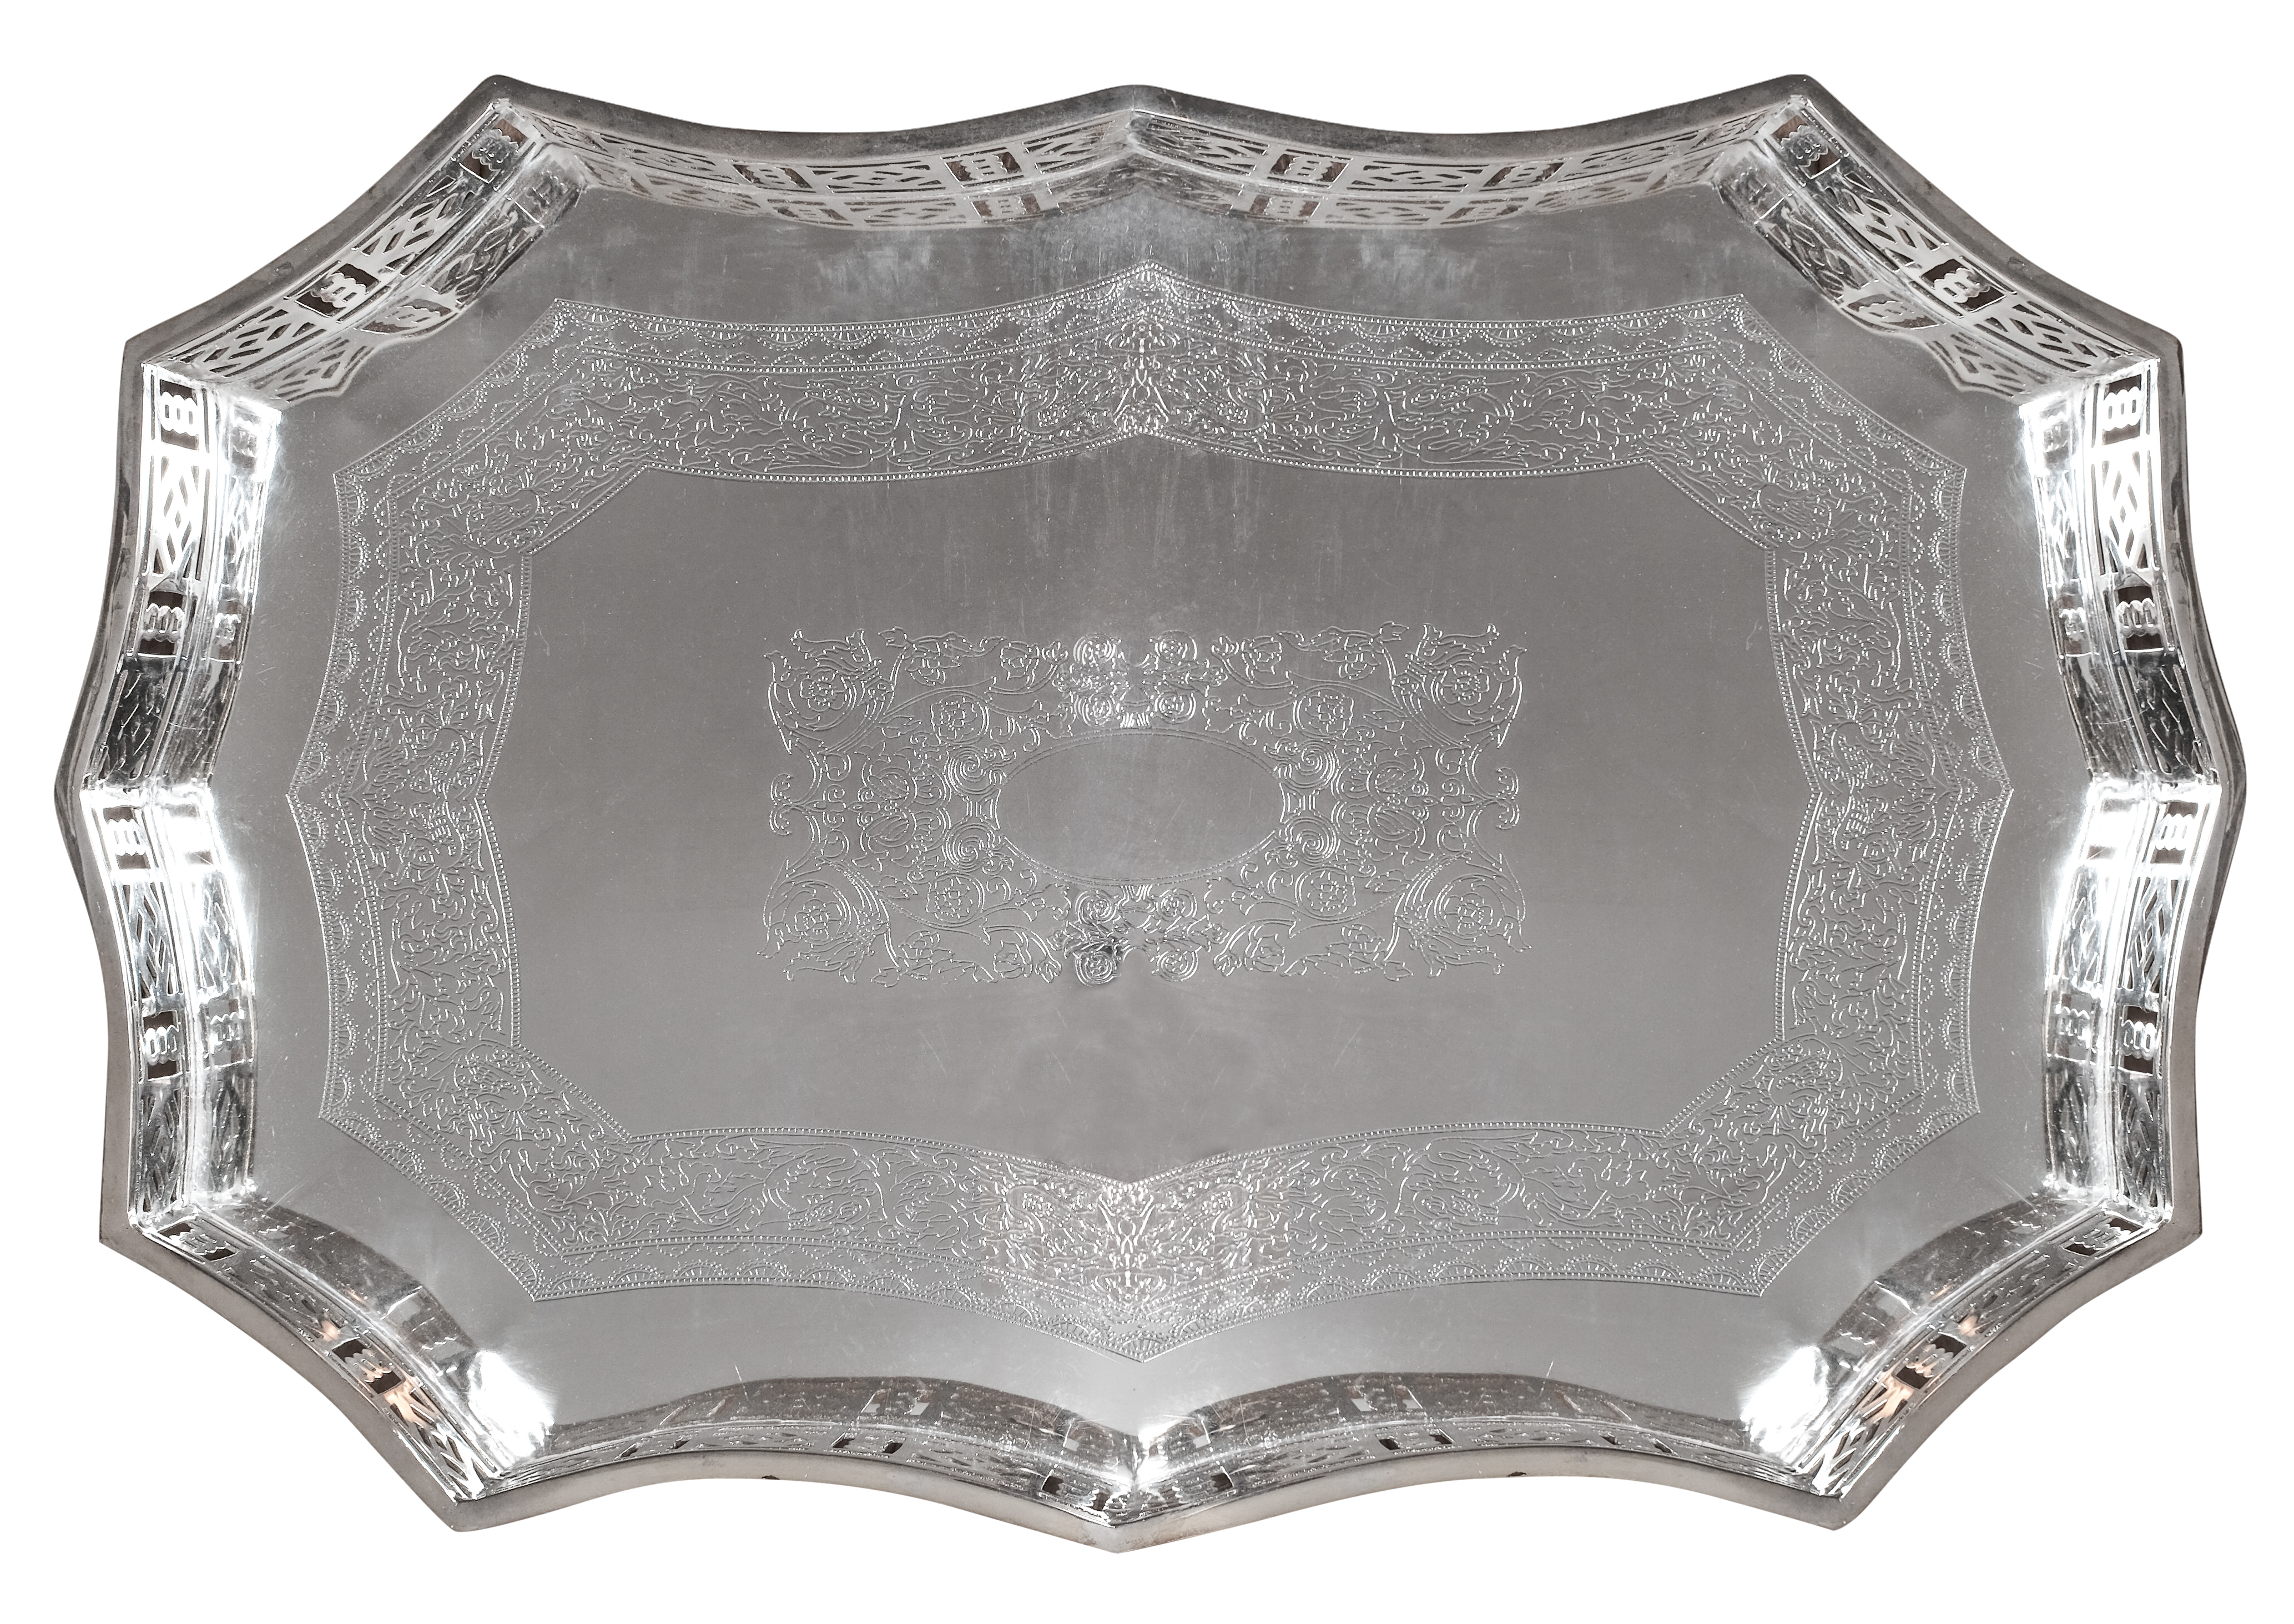 NEW! Incredible large Chippendale gallery tray in high quality silver-plate